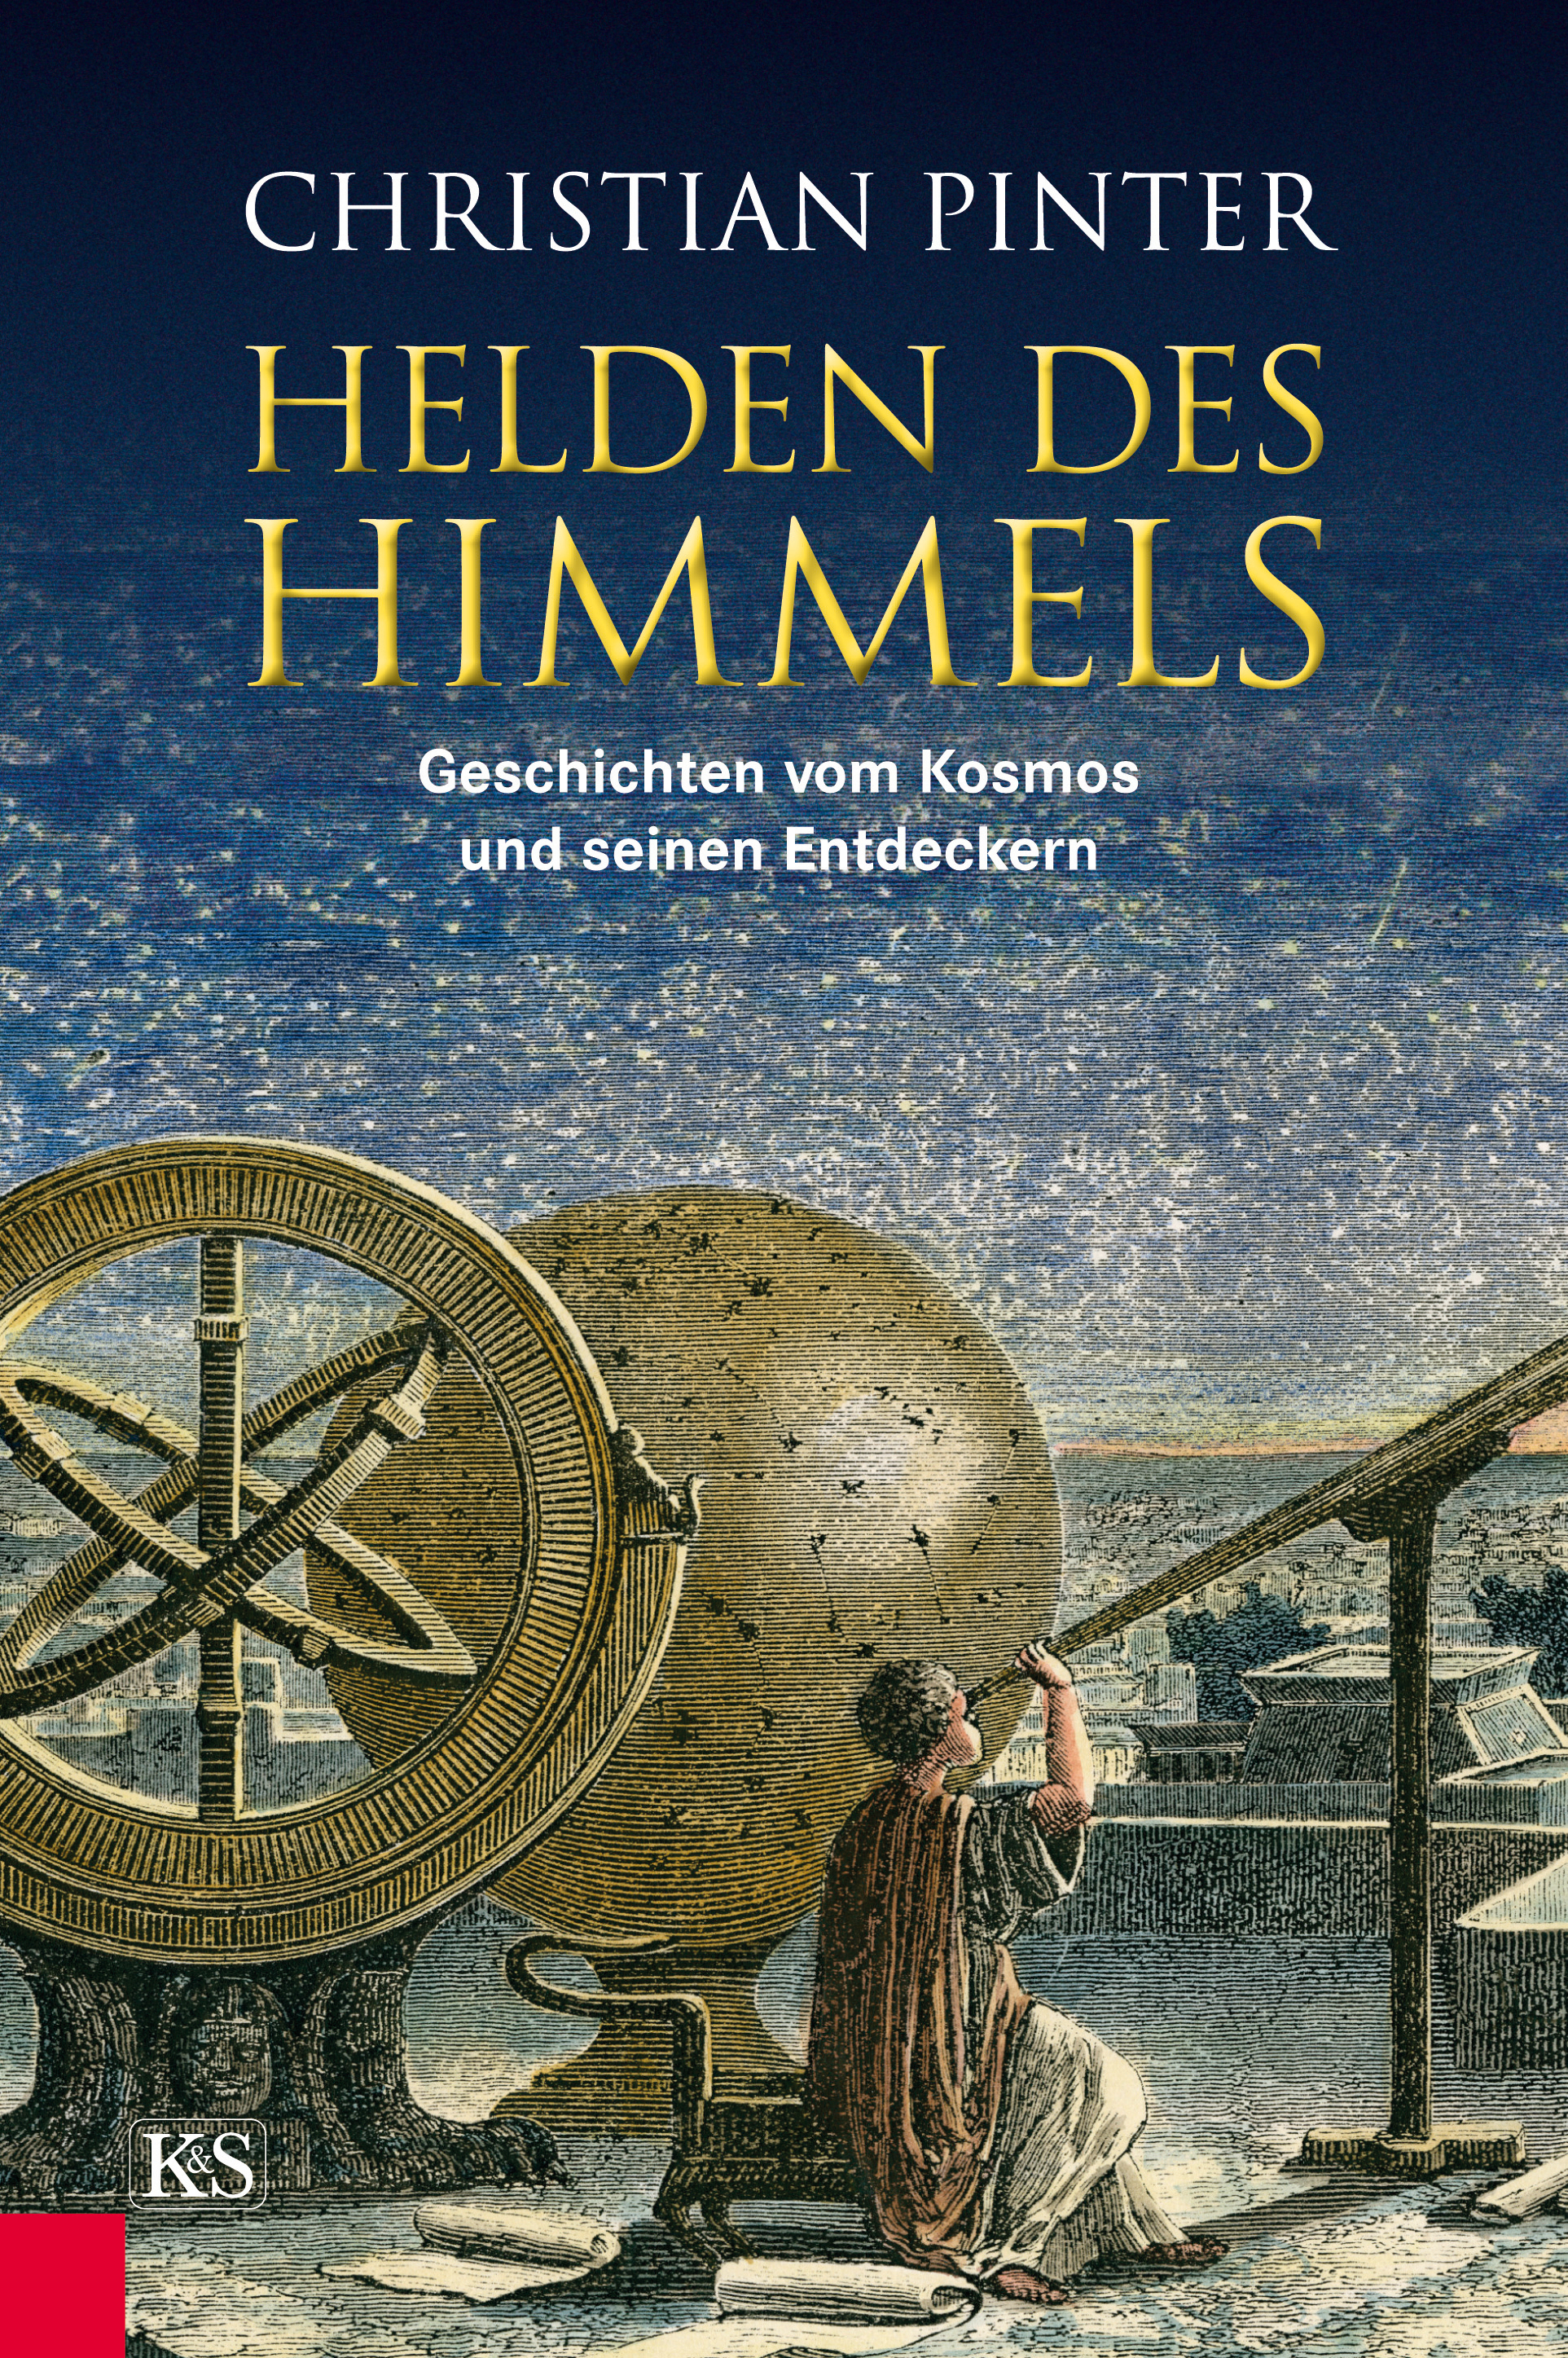 Christian Pinter Helden des Himmels